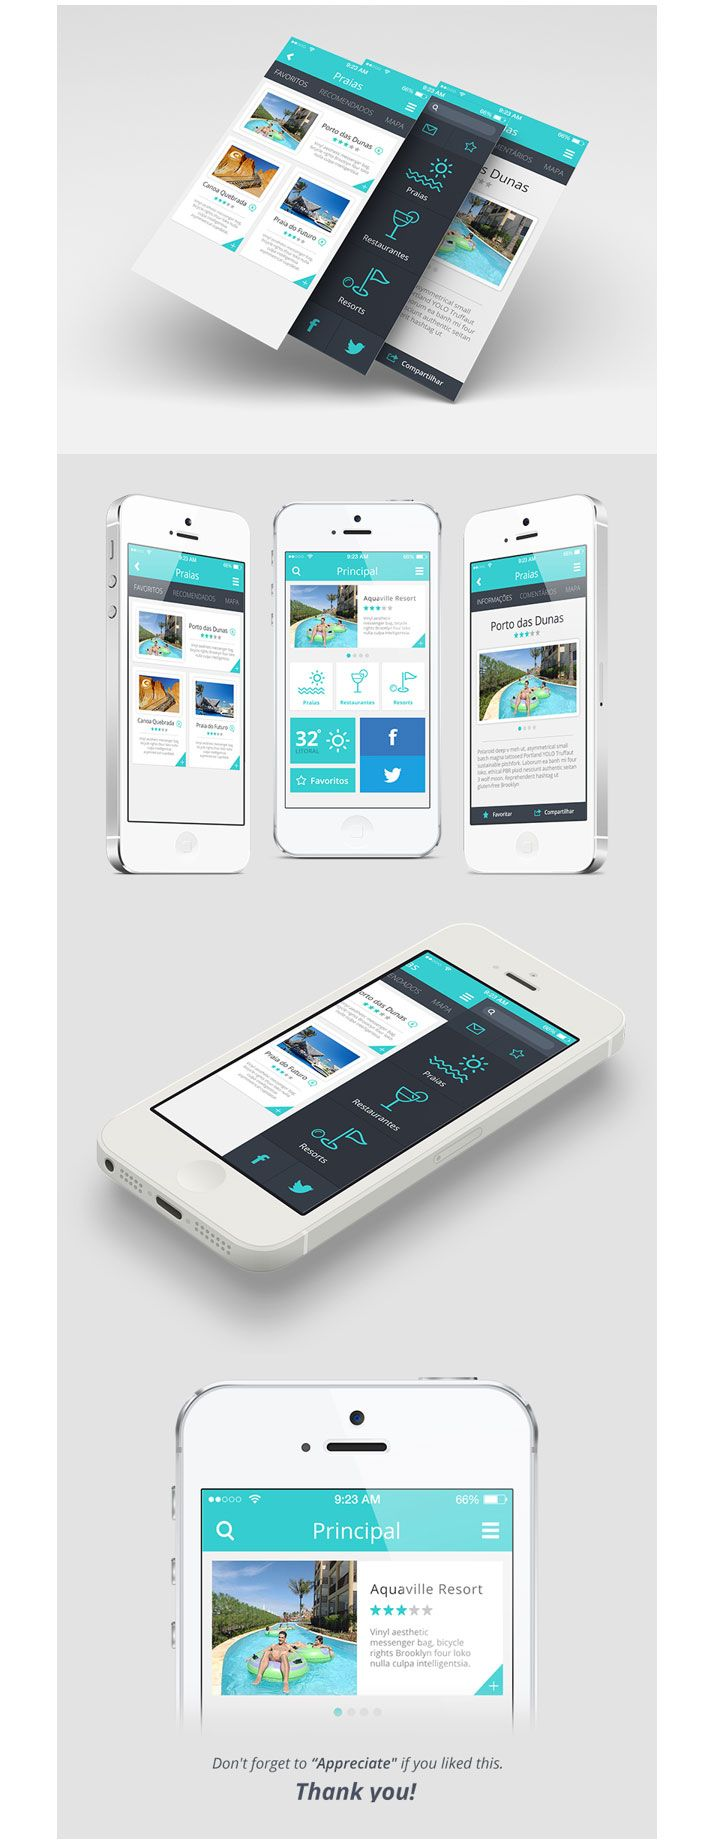 Daily Mobile UI Design Inspiration #148